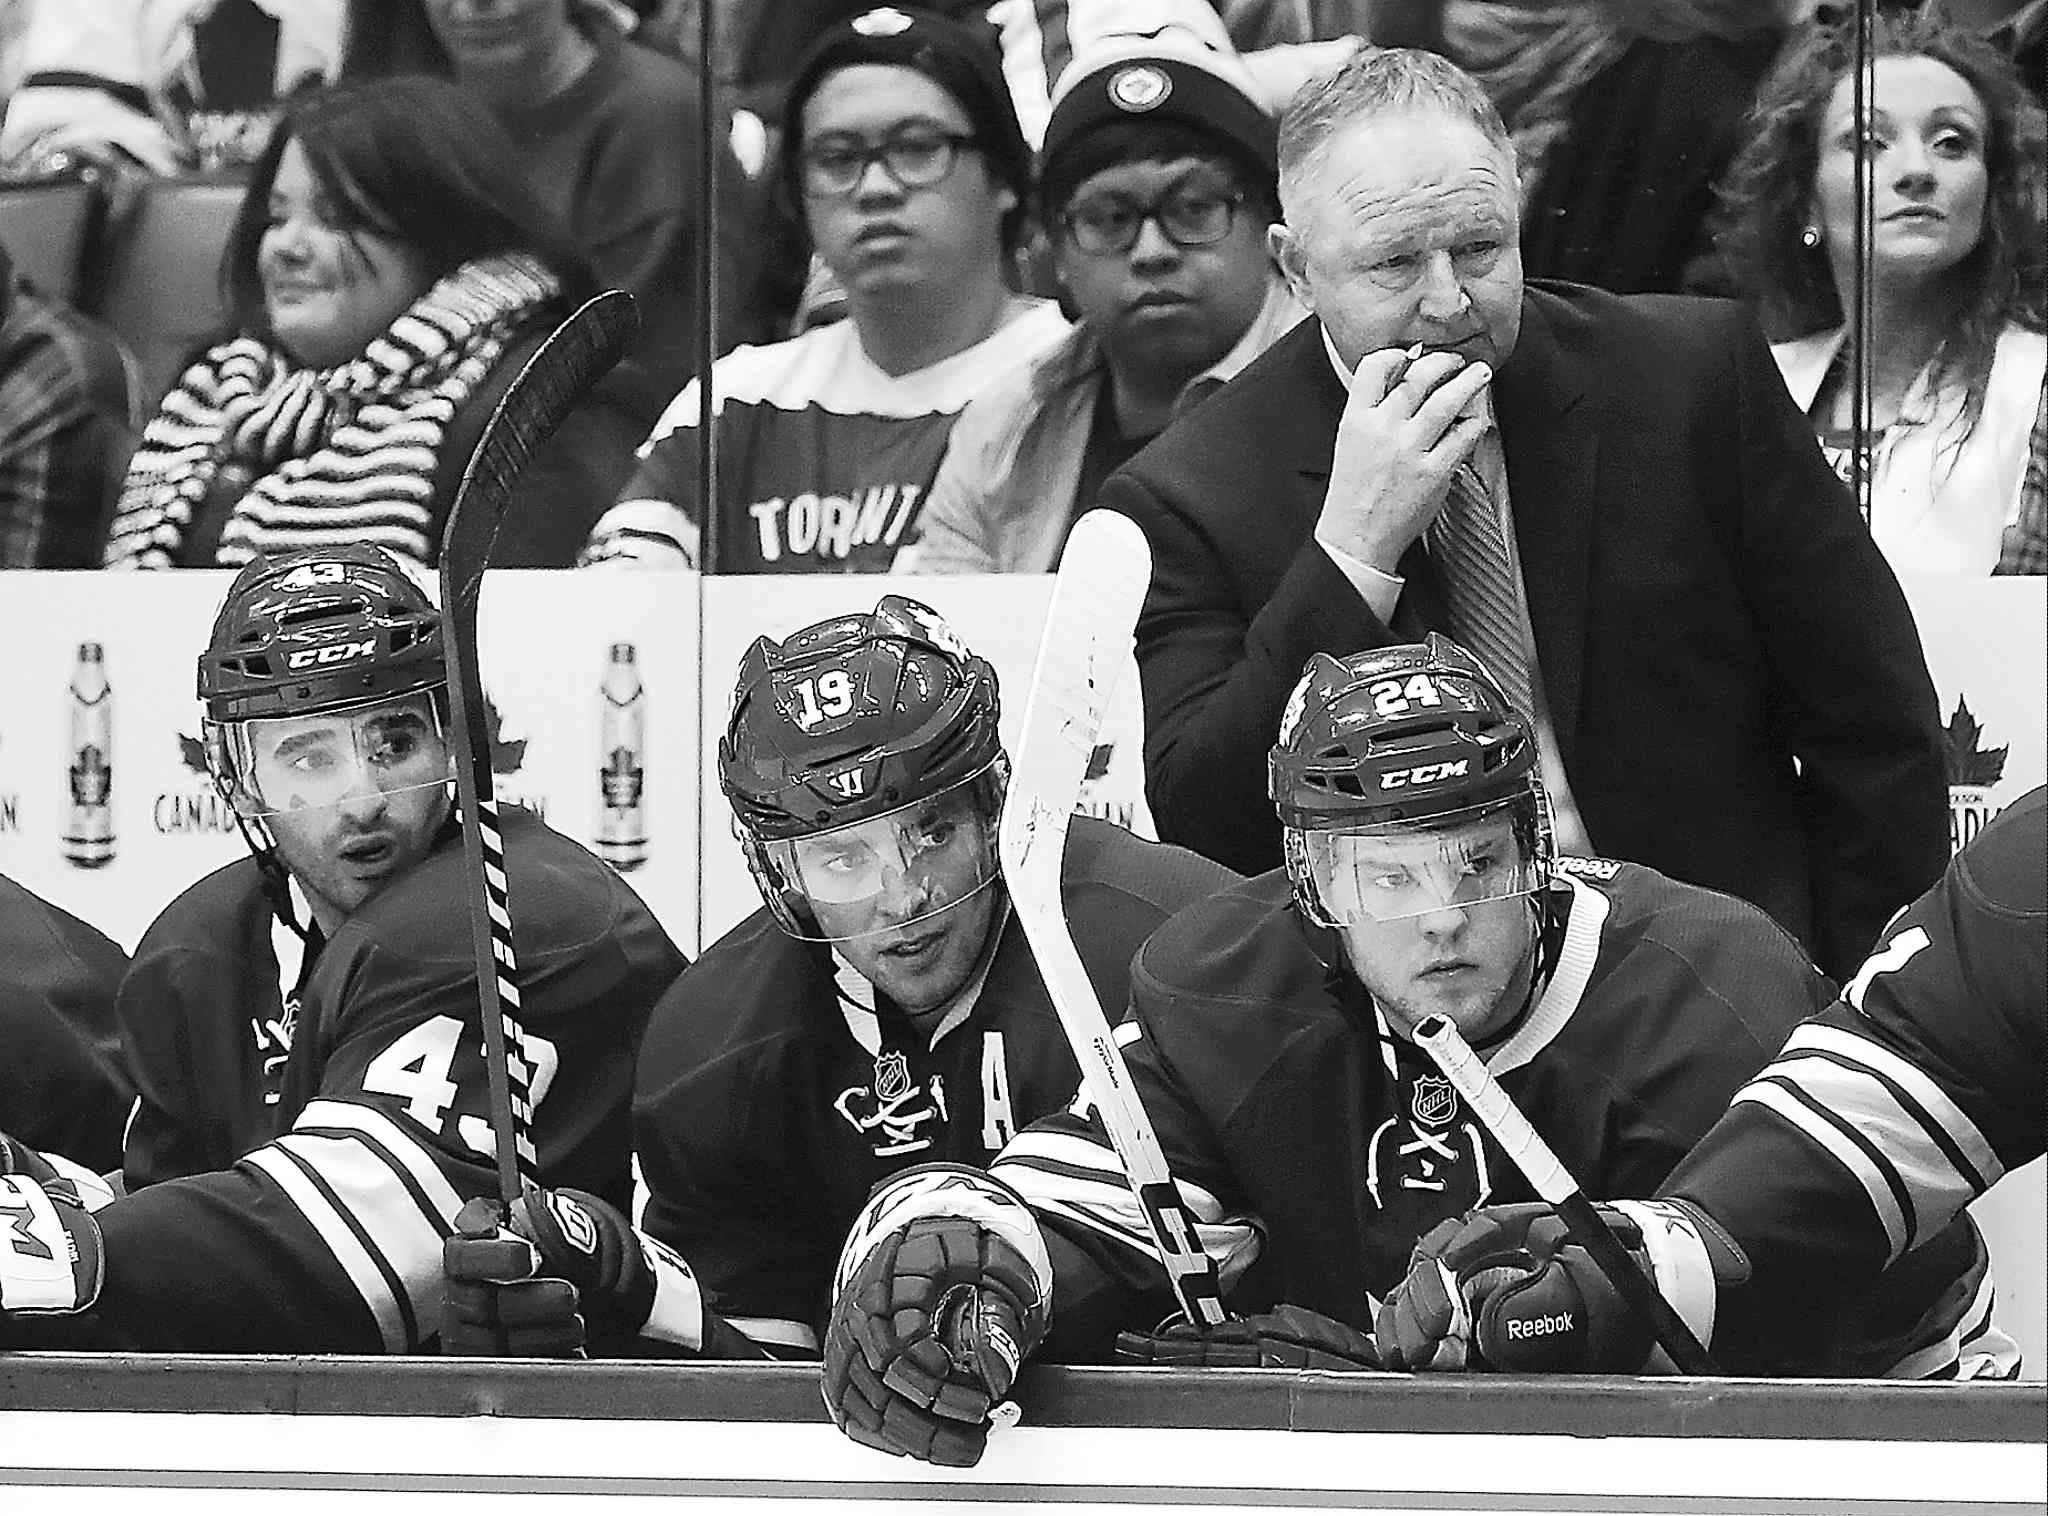 Toronto Maple Leafs coach Randy Carlyle should get a better effort from his troops tonight at the MTS Centre.